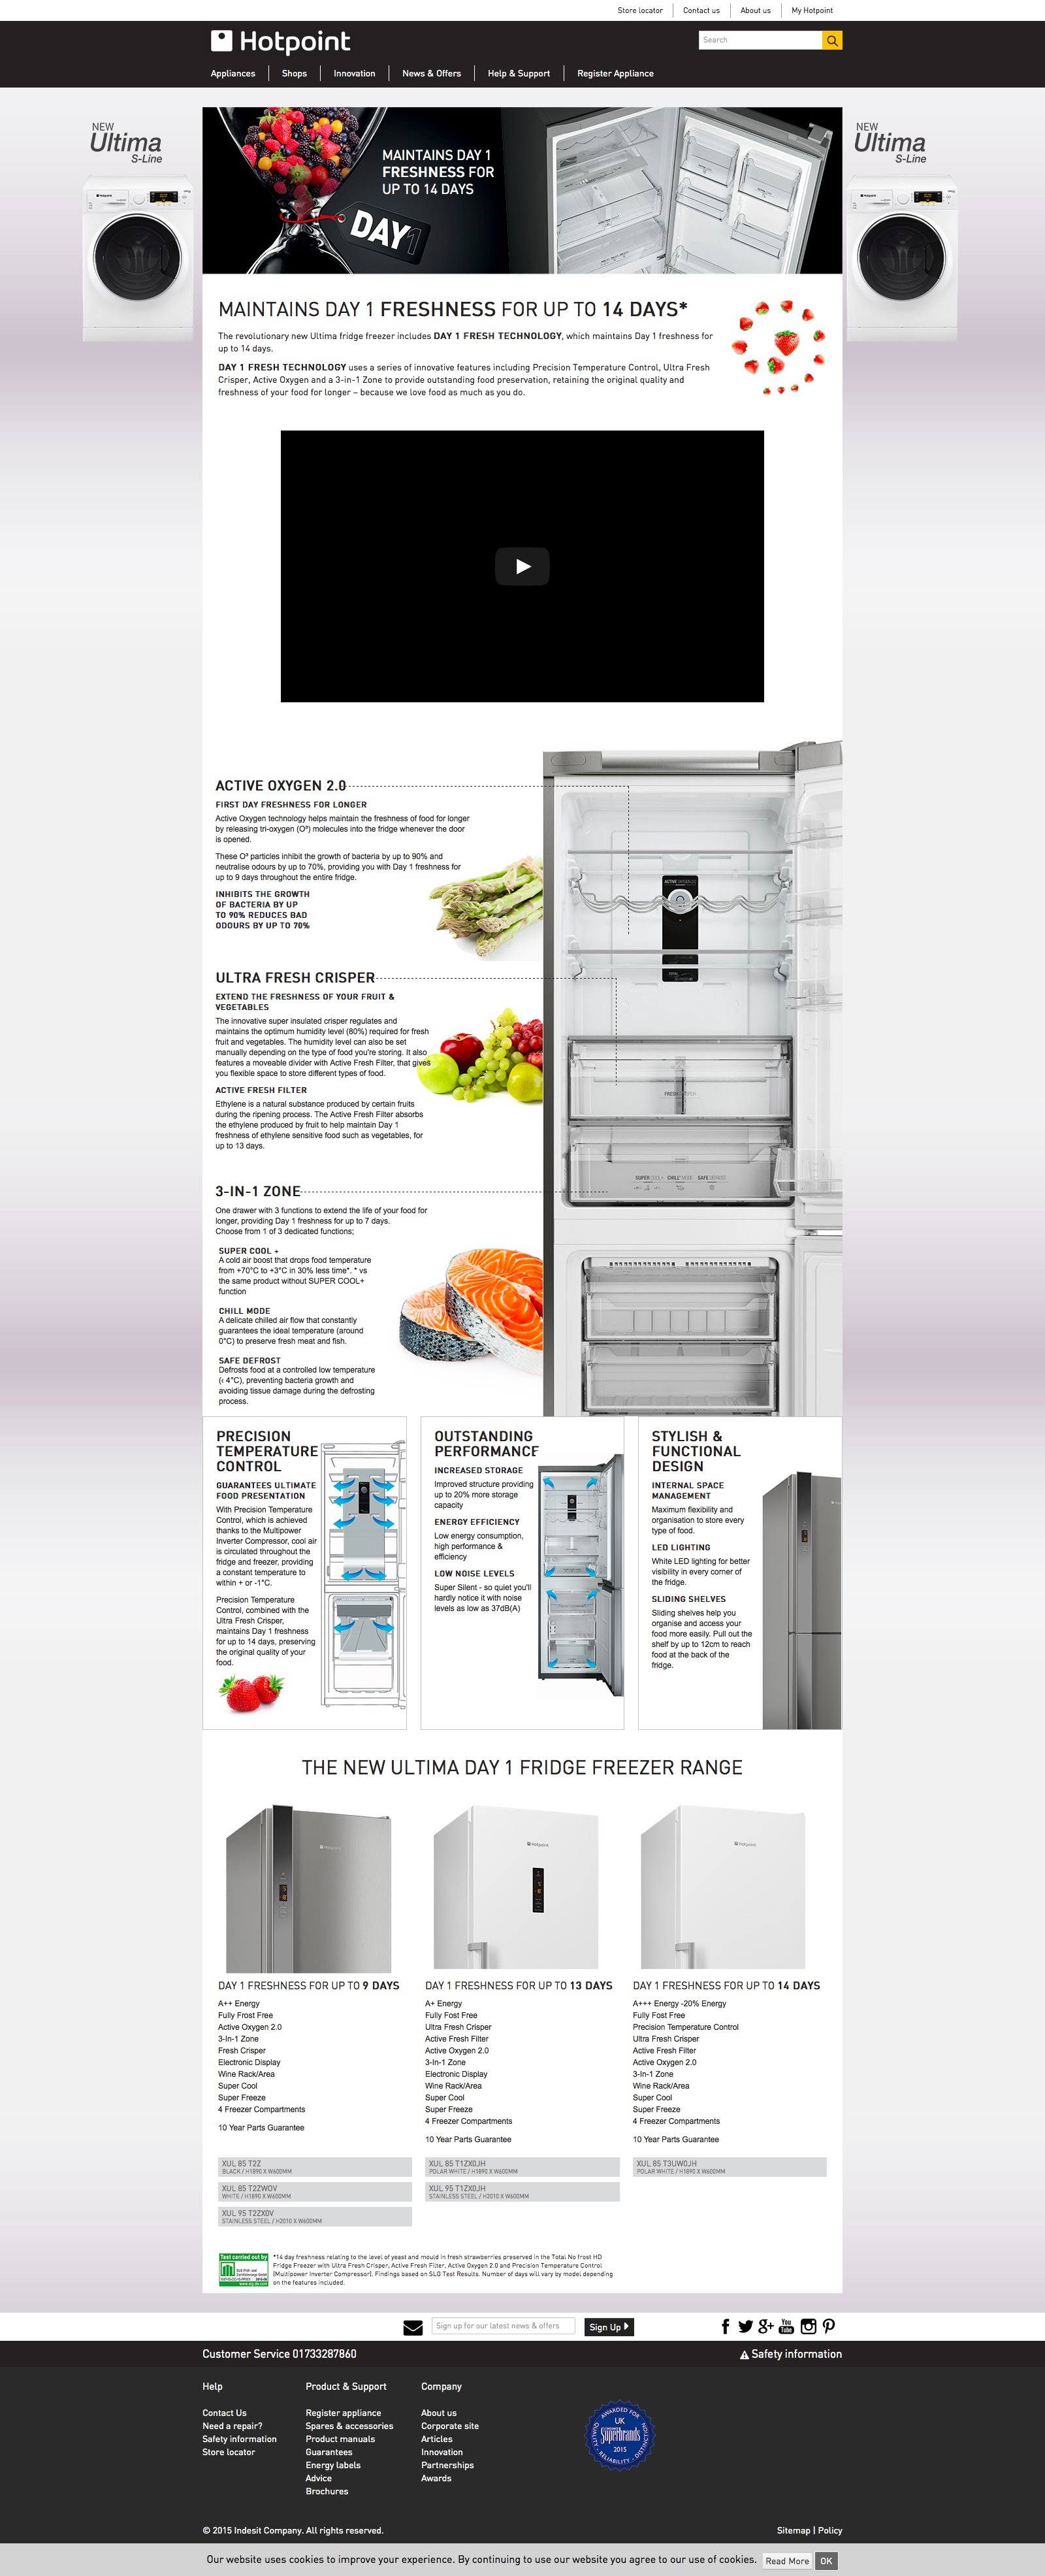 Day 1 Fridge Freezer campaign for Hotpoint